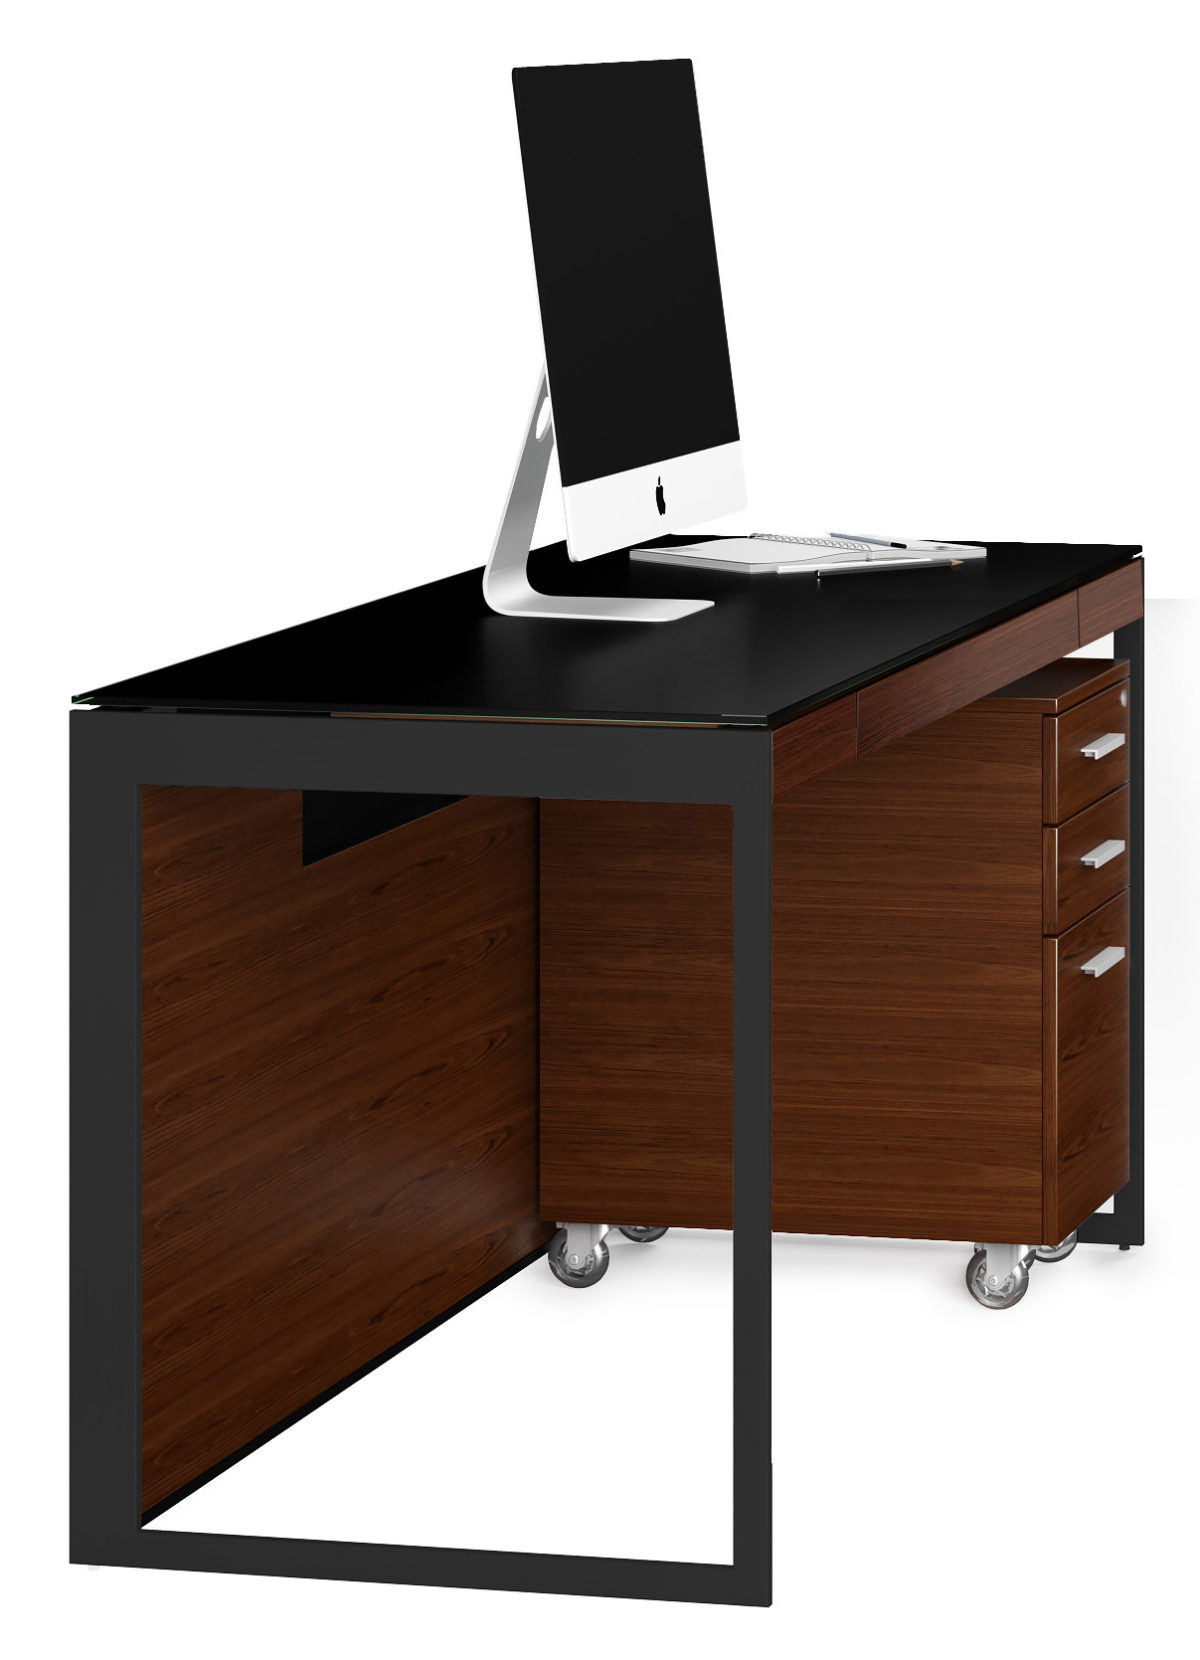 Select from two steel frames for the Sequel 6103 compact desk—Satin Nickel and Black powder coat—and three wood finishes to create the Sequel Office that is perfect for you.